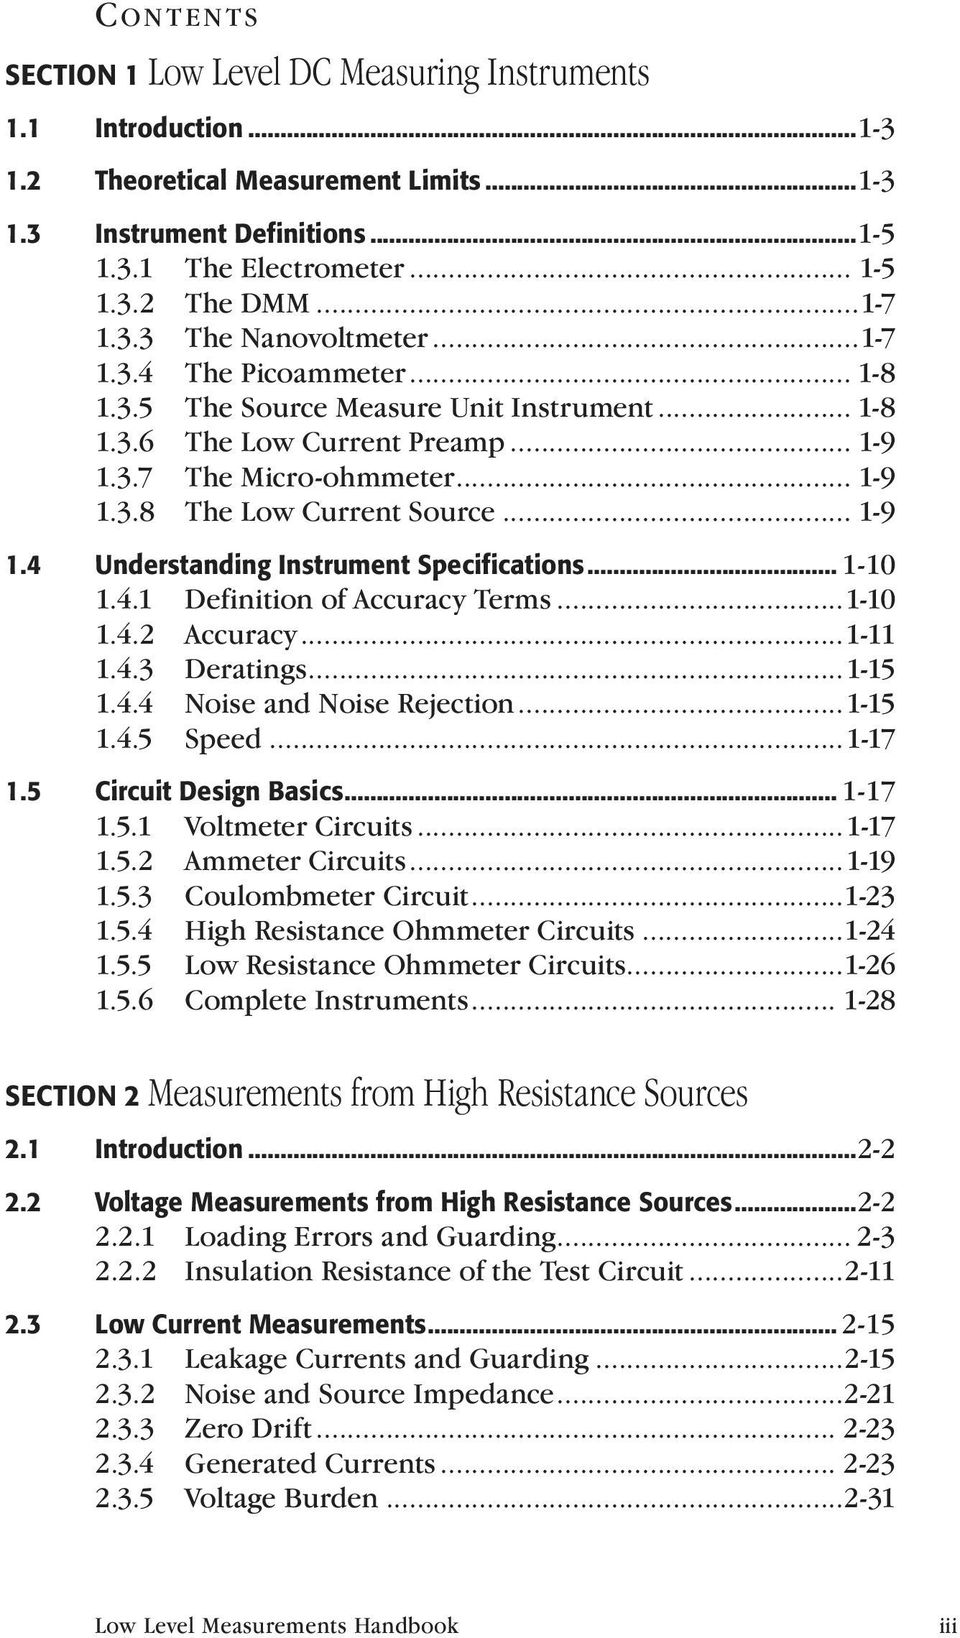 .. 1-9 1.4 Understanding Instrument Specifications... 1-10 1.4.1 Definition of Accuracy Terms...1-10 1.4.2 Accuracy...1-11 1.4.3 Deratings...1-15 1.4.4 Noise and Noise Rejection...1-15 1.4.5 Speed.